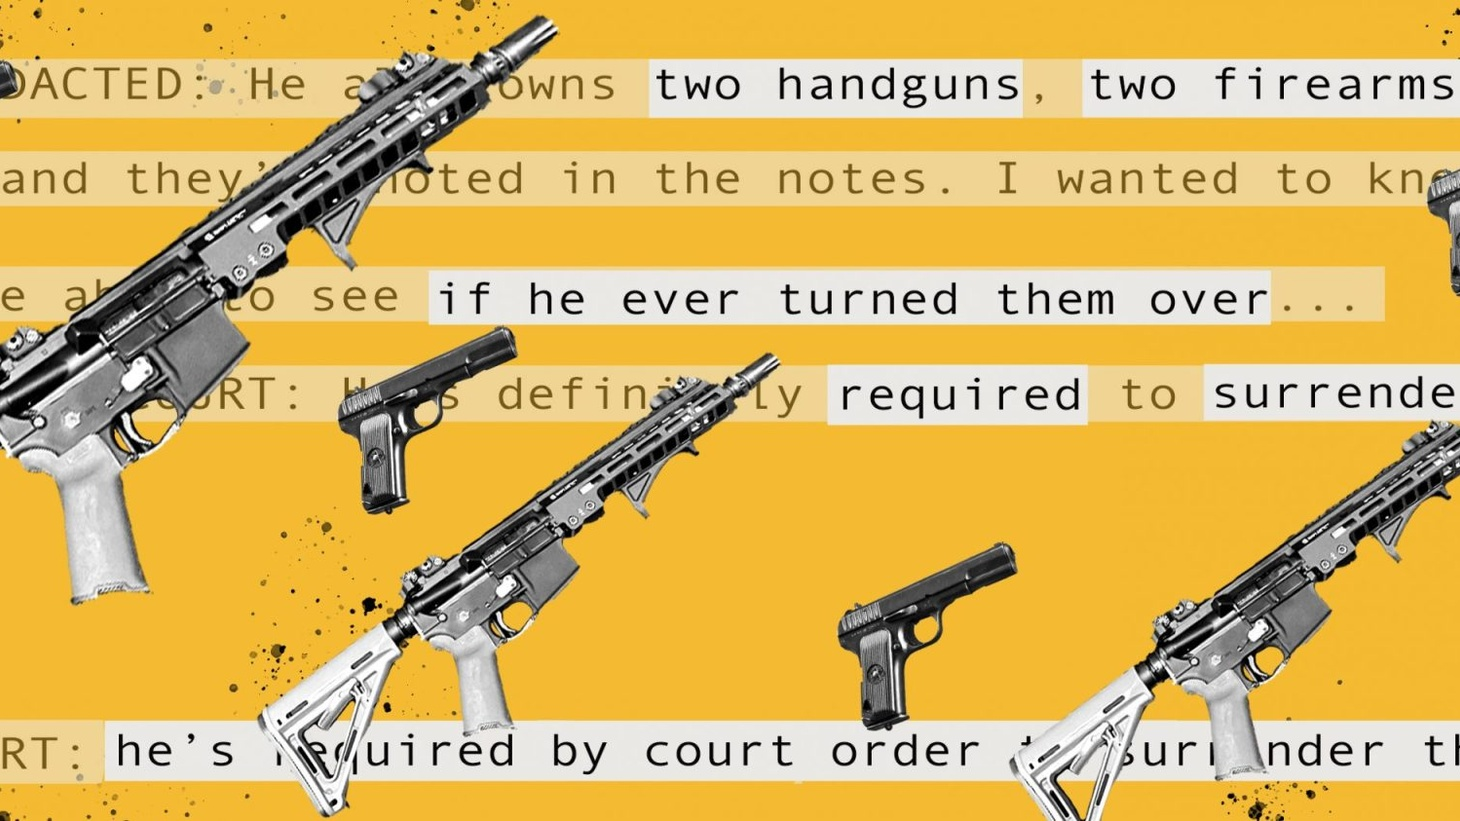 Two decades ago, California enacted a law to remove guns from people deemed too dangerous to be armed. But the measure, plagued by problems, has not achieved its promise.